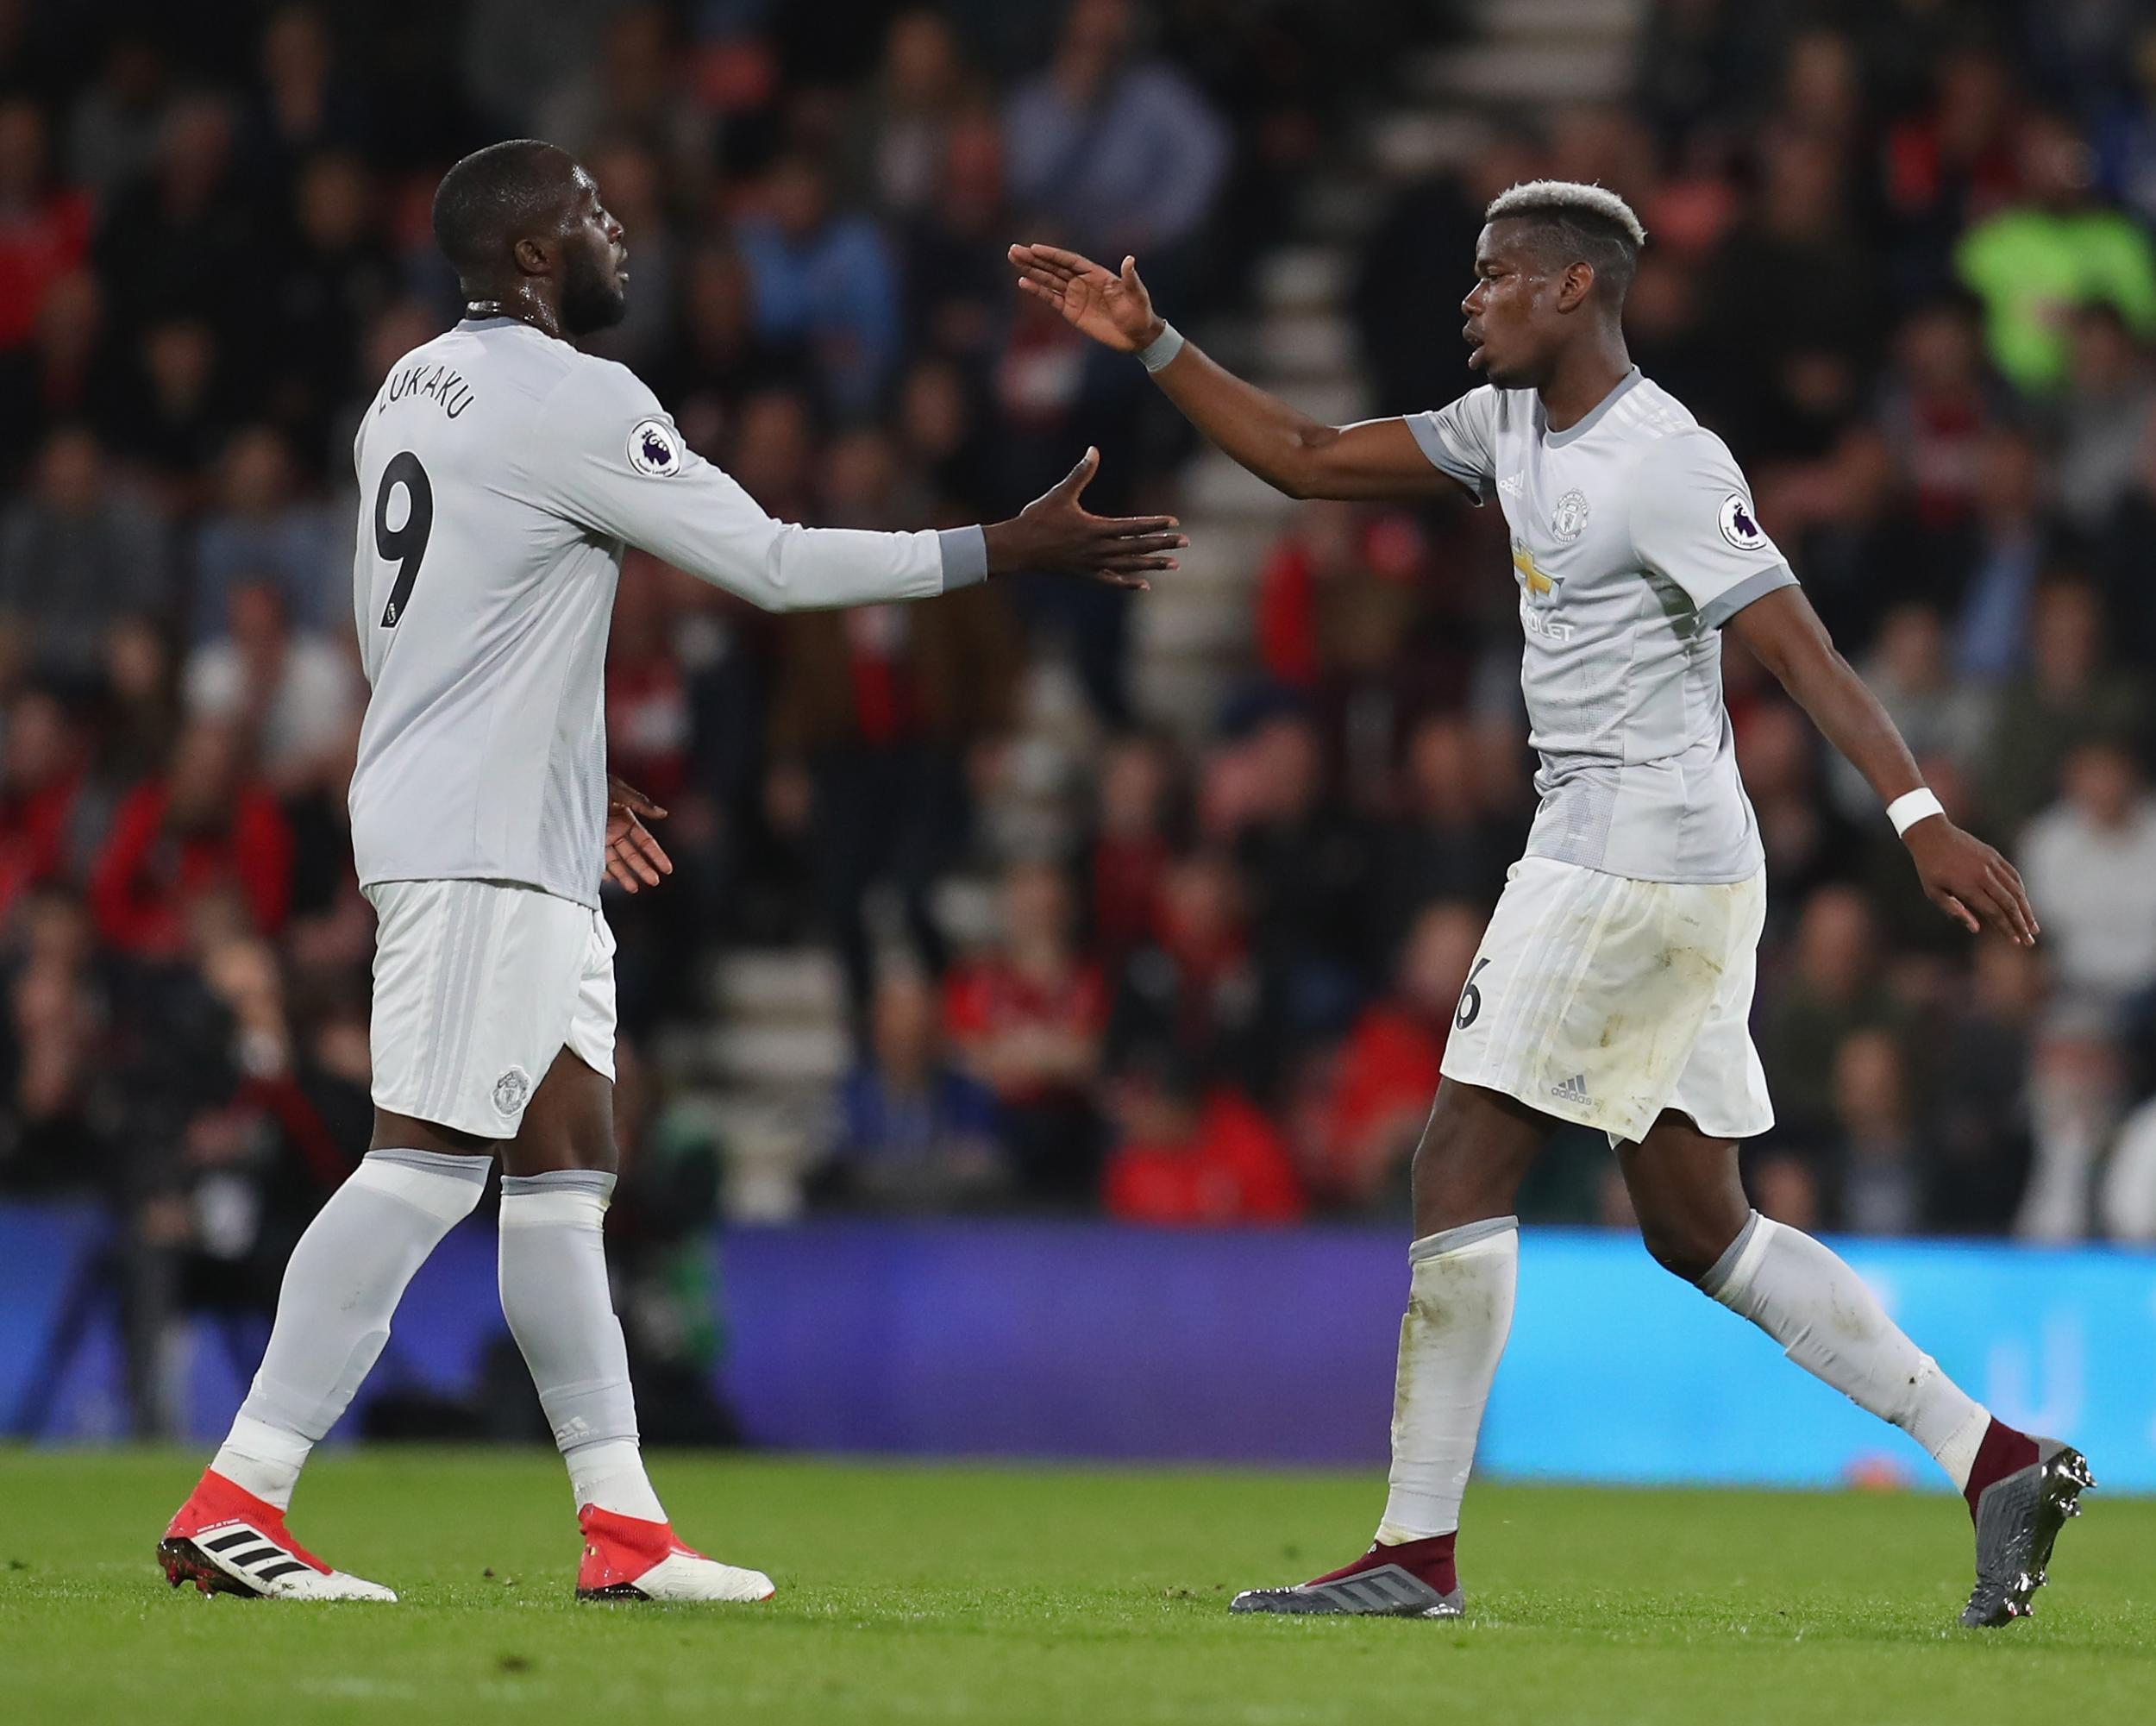 Paul Pogba Impresses For Manchester United Against Bournemouth But Late Substitution Points To Trouble The Independent